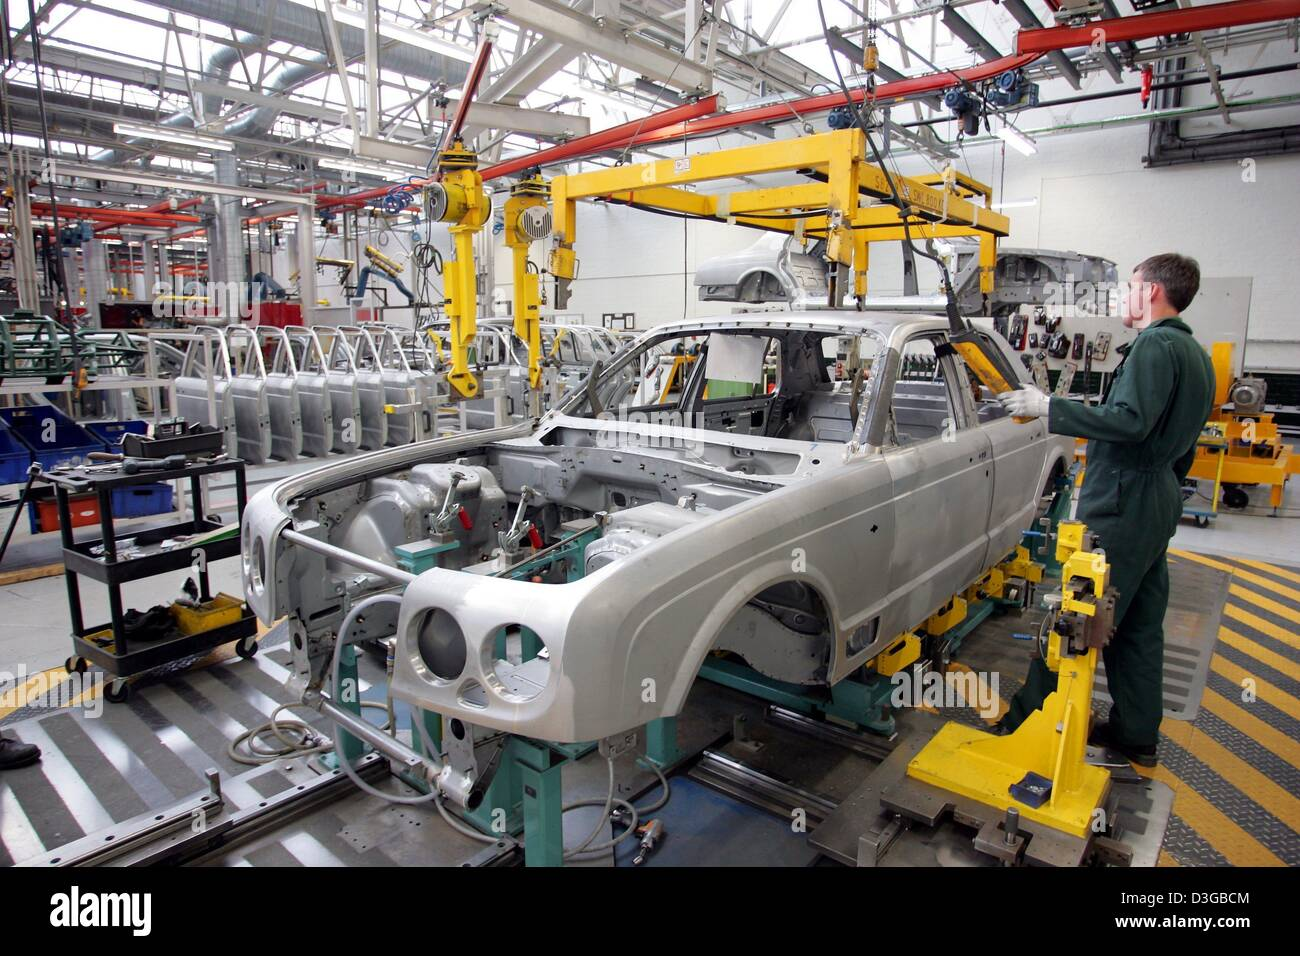 (dpa) - A worker in the production line of British carmaker Bentley during the assembly of components on a body - Stock Image